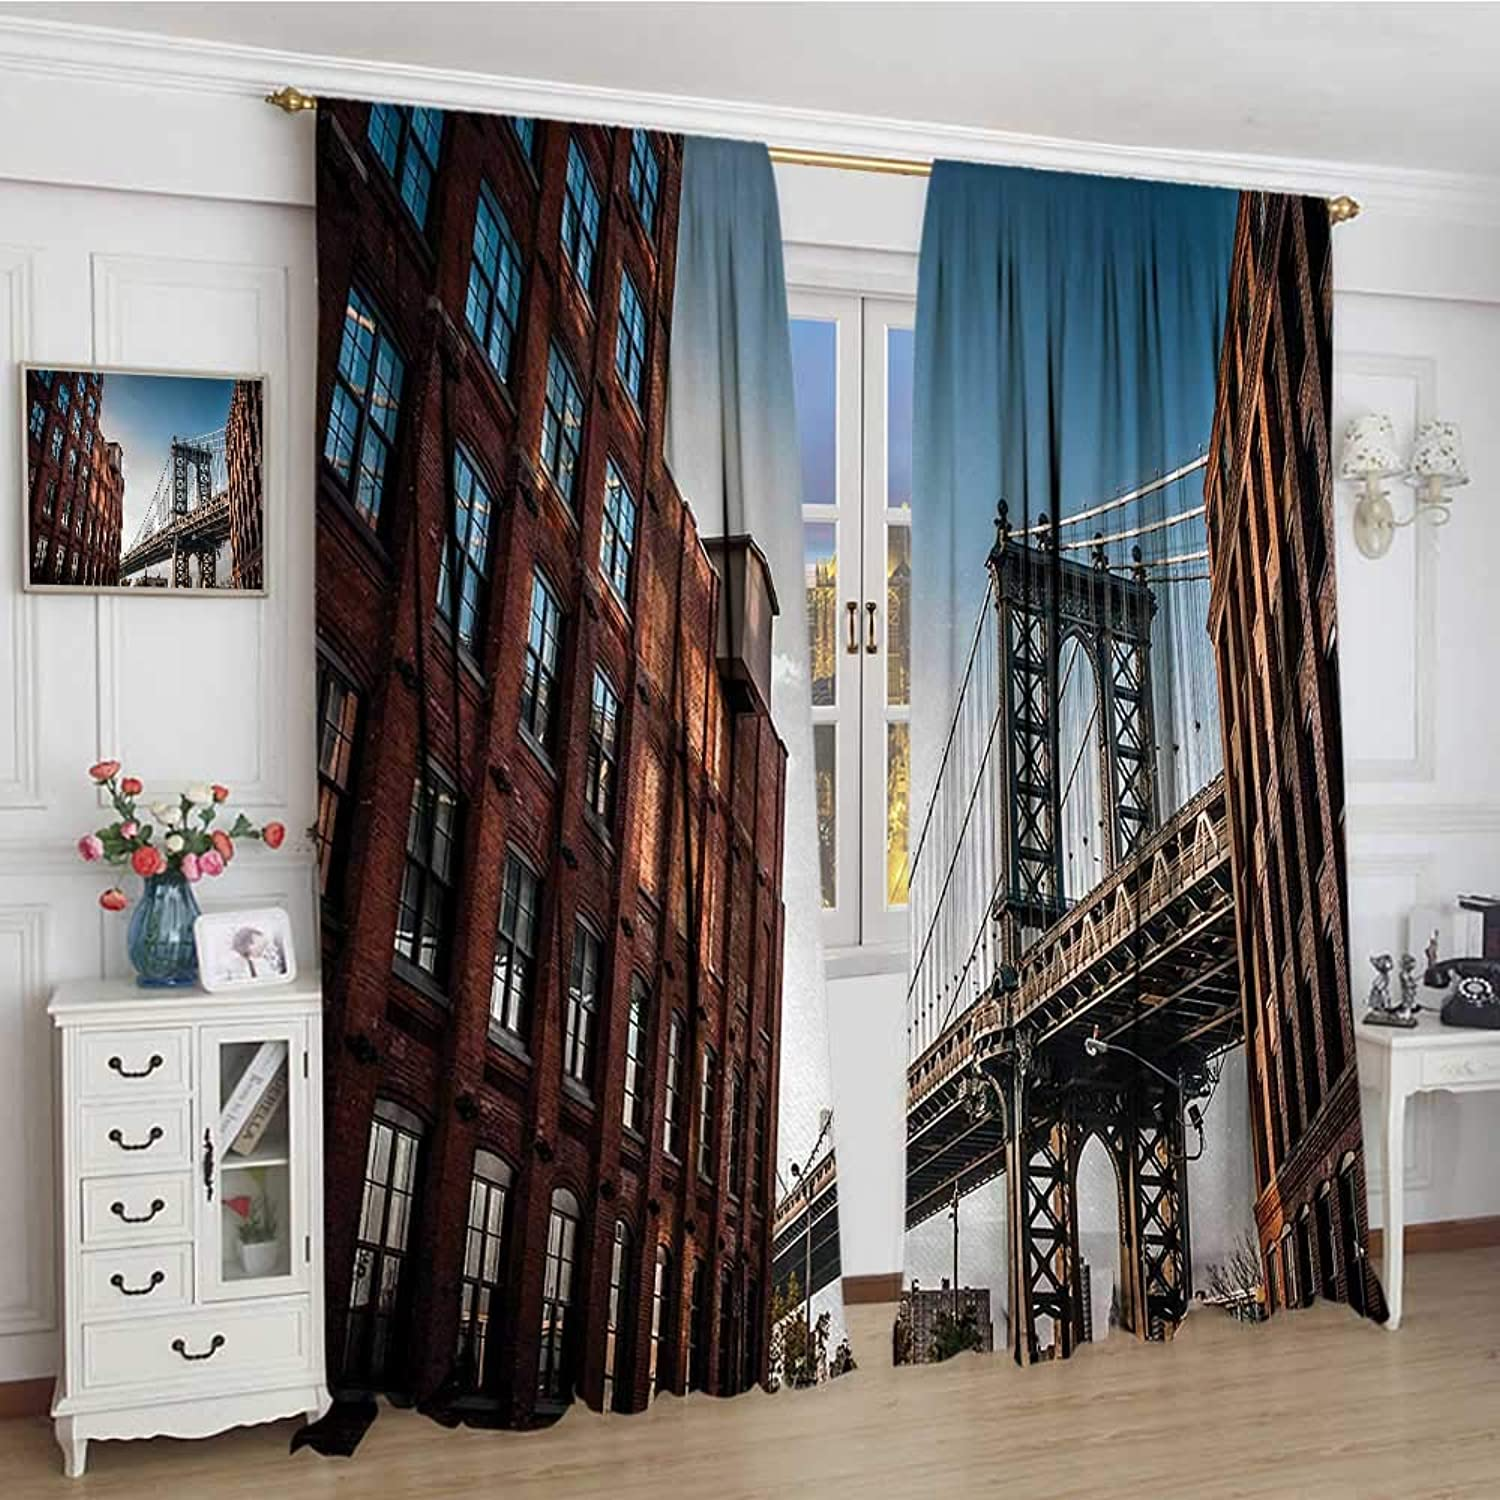 Smallbeefly New York Blackout Window Curtain Manhattan Bridge Seen from Narrow Alley Island Bgoldugh Globally Influential Town NYC Patterned Drape for Glass Door 96 x72  bluee Red